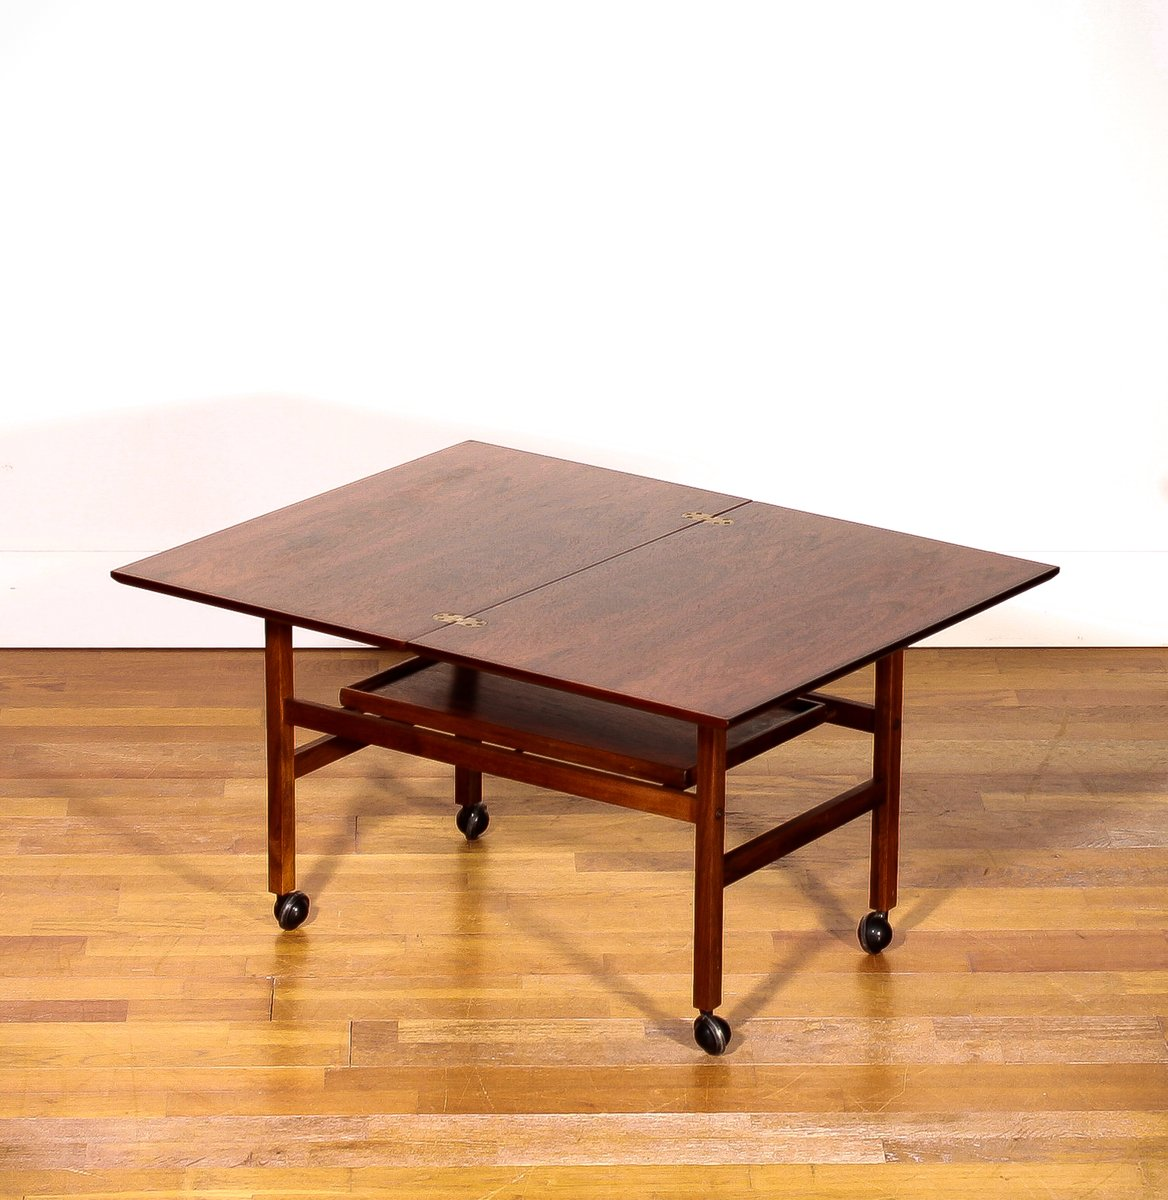 Fold-Out Coffee Table from Arrebo Møbler for sale at Pamono